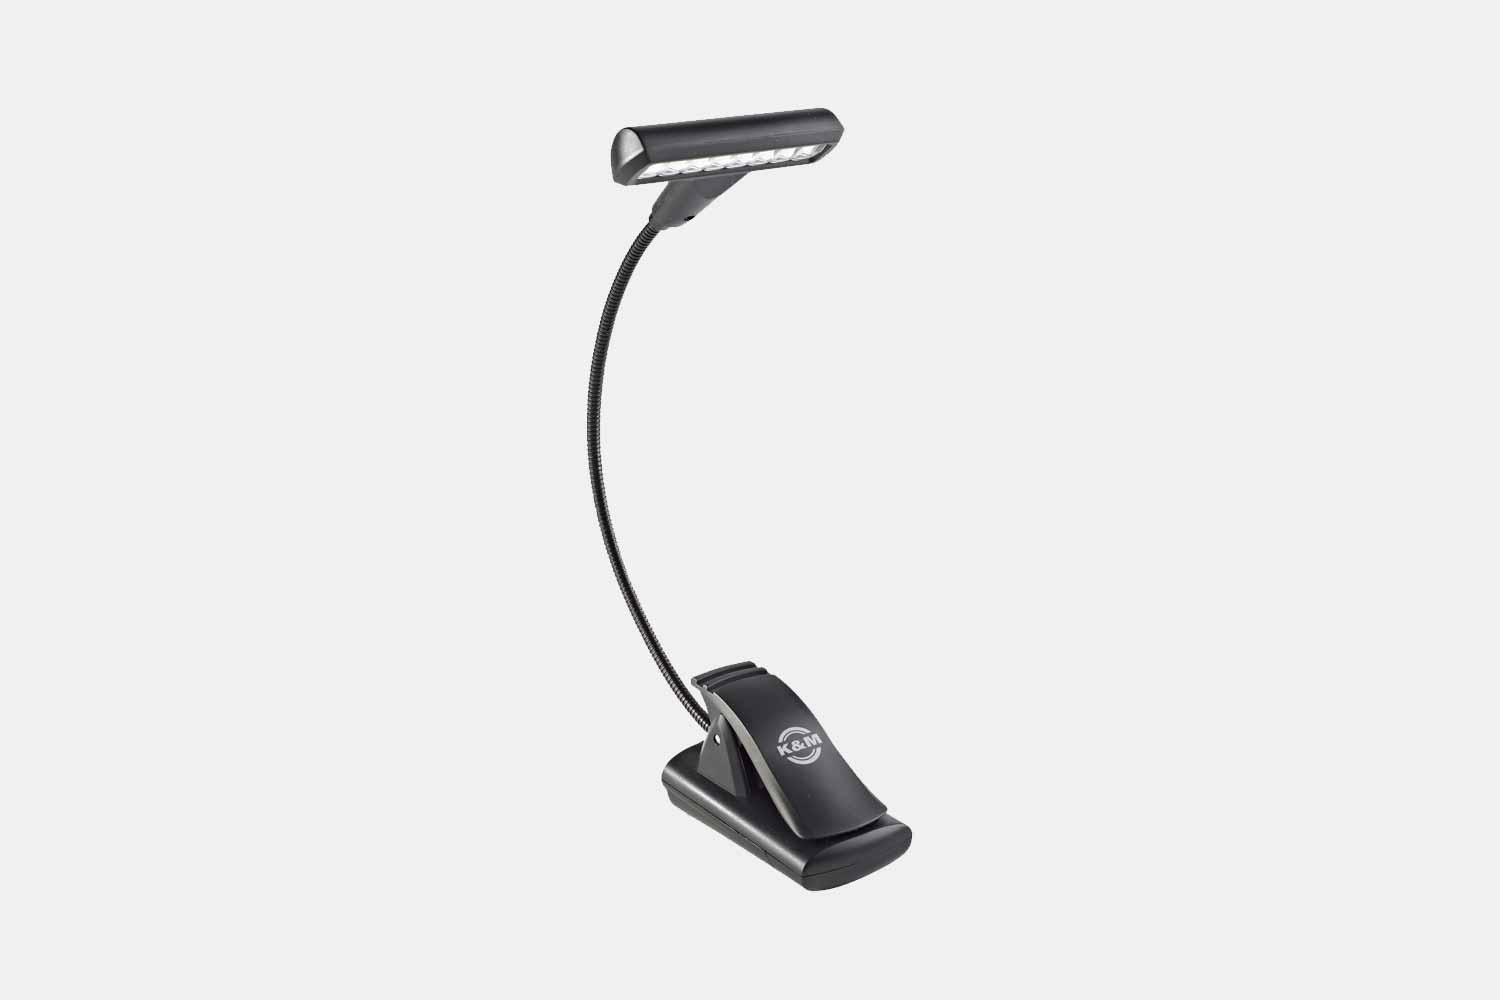 K&M Lessenaarlamp Mighty Bright Hammer Head (5522628411556)